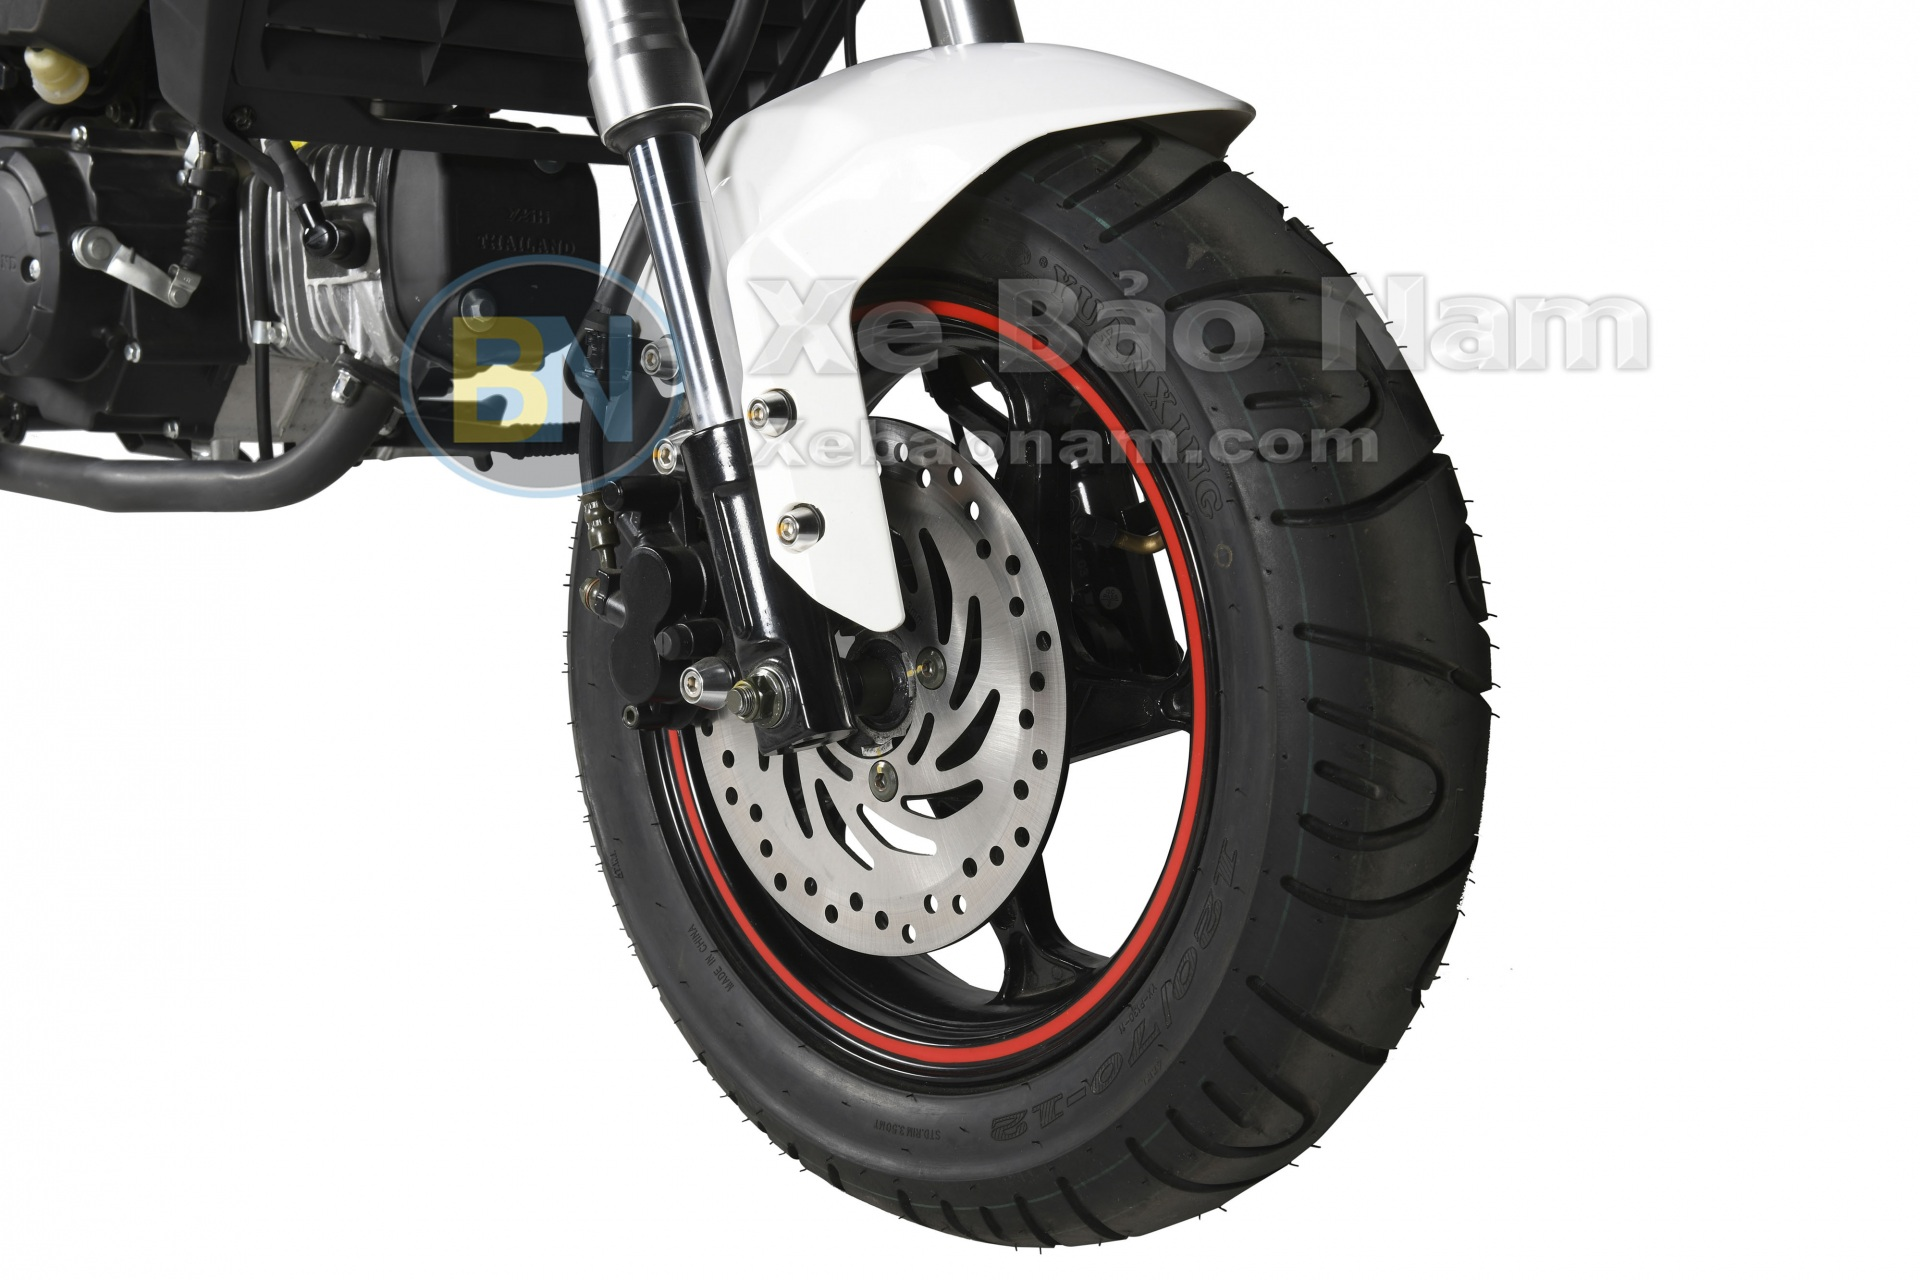 xe-may-ducati-monster-110-doi-moi-lop-xe